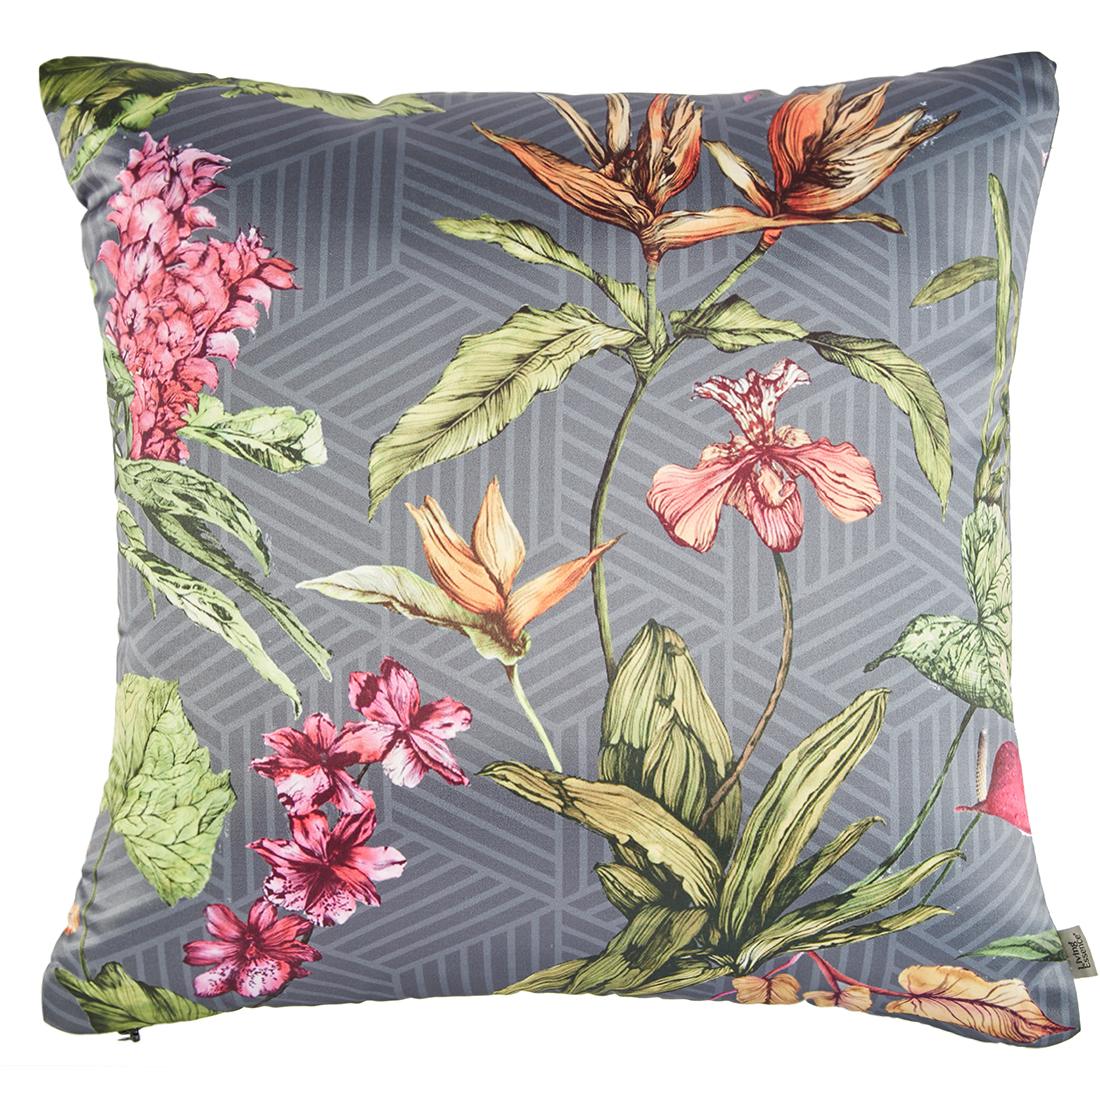 Digital Cushion Cover Paradise Cushion Covers in Poly Satin Colour by Living Essence